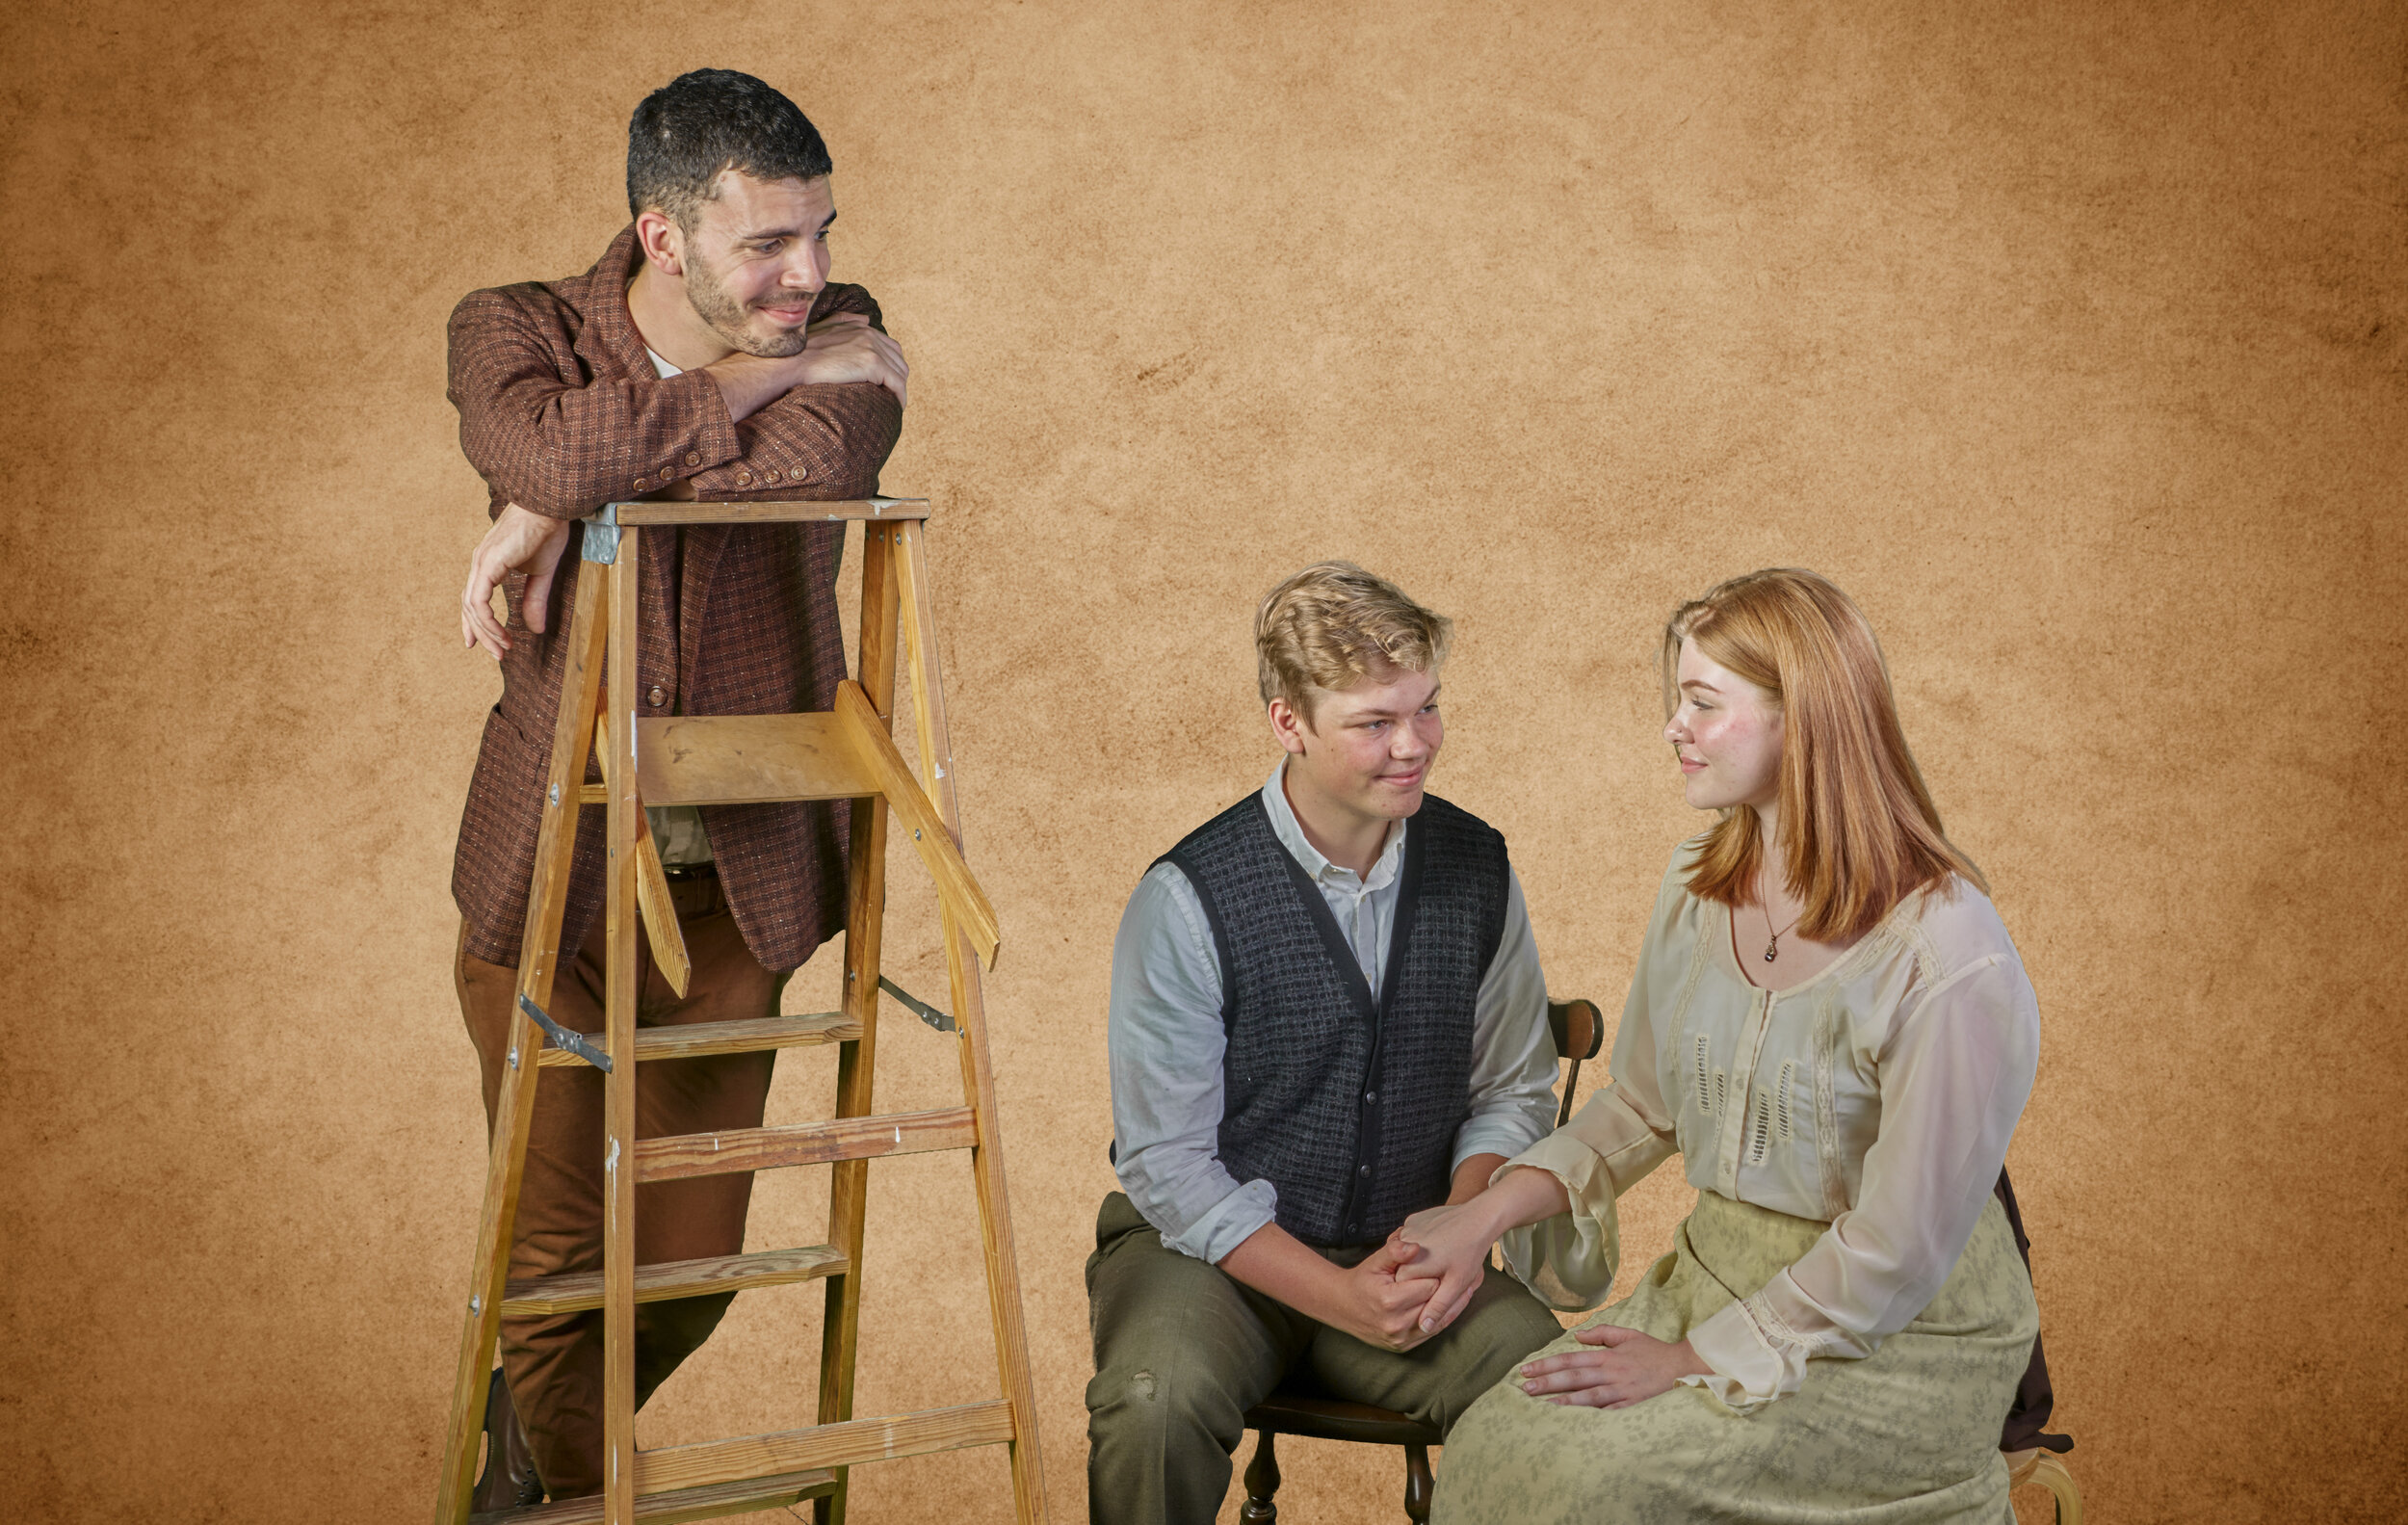 OUR TOWN - Thornton Wilder's beloved small-town play comes to Pacific Grove.